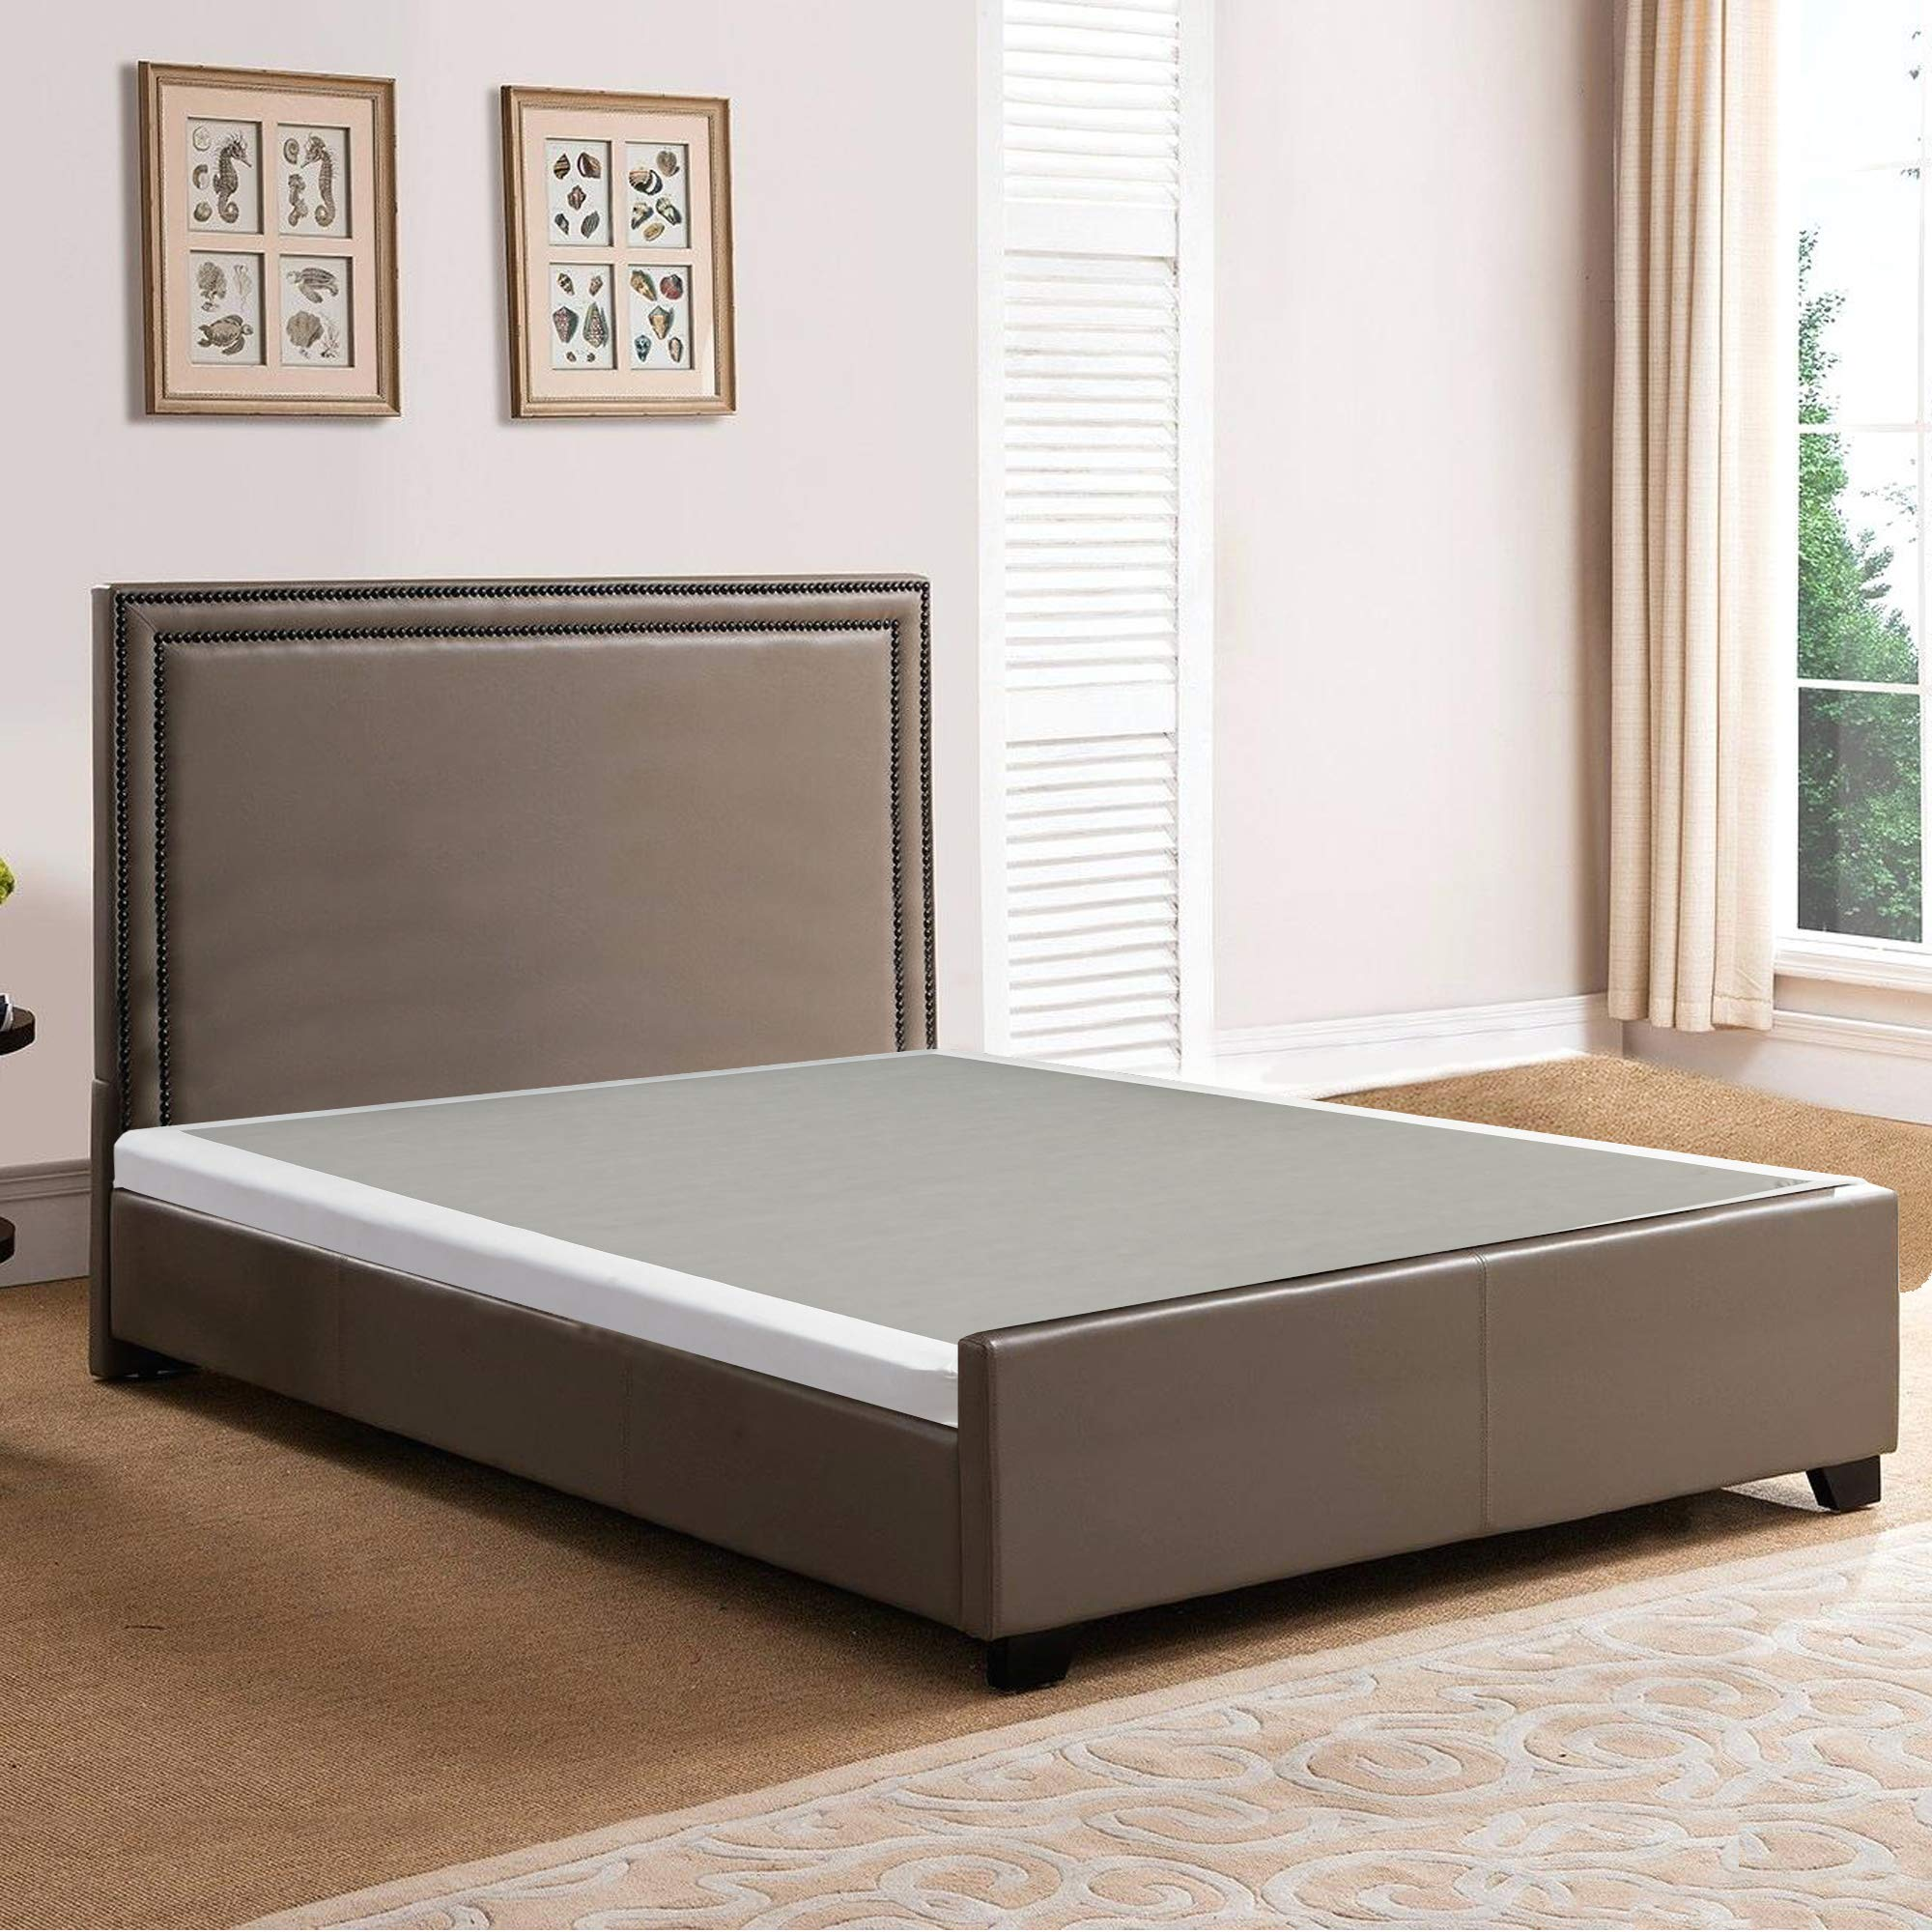 Spring Solution Fully Assembled Long Lasting 8 Inch Box Spring, Queen